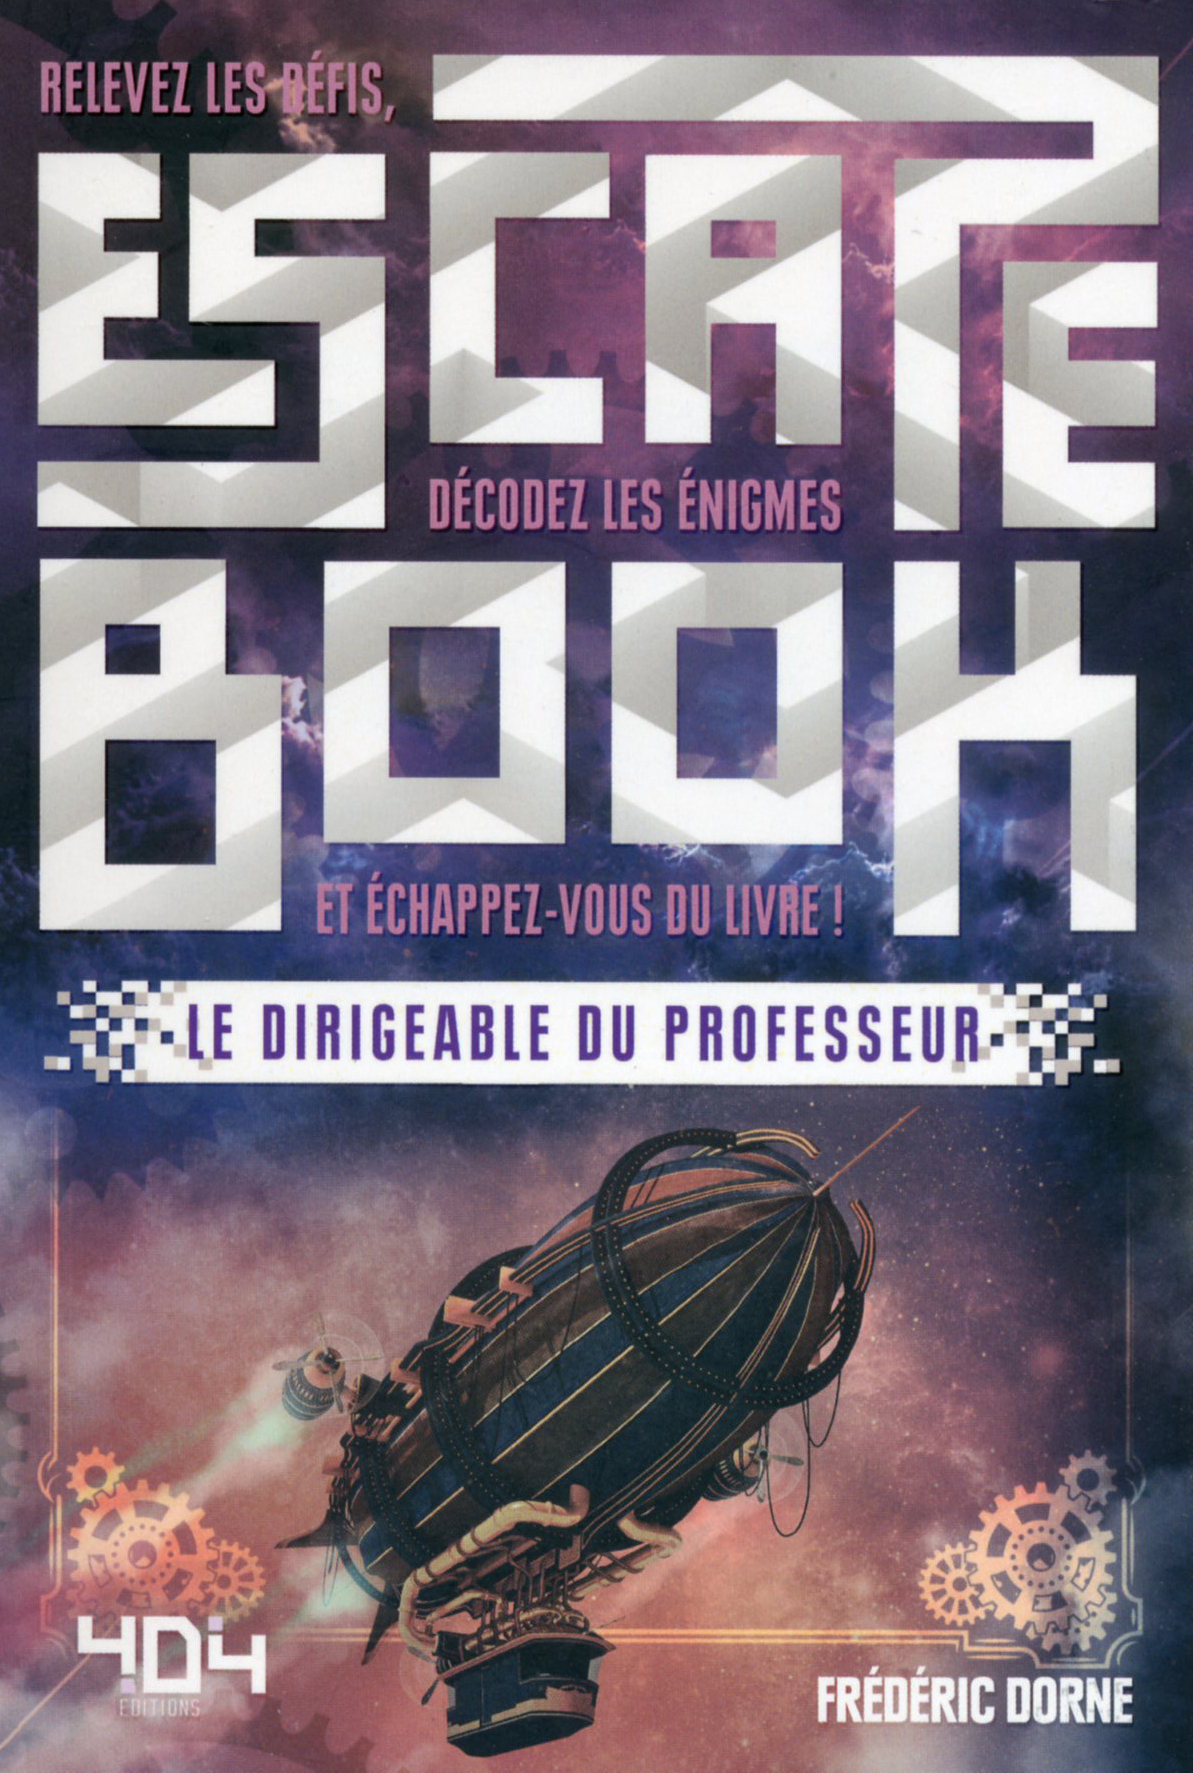 Escape book- Le dirigeable du professeur - Escape Games - Jeu de société d'évasion - Escape rooms - Great Escape - Large